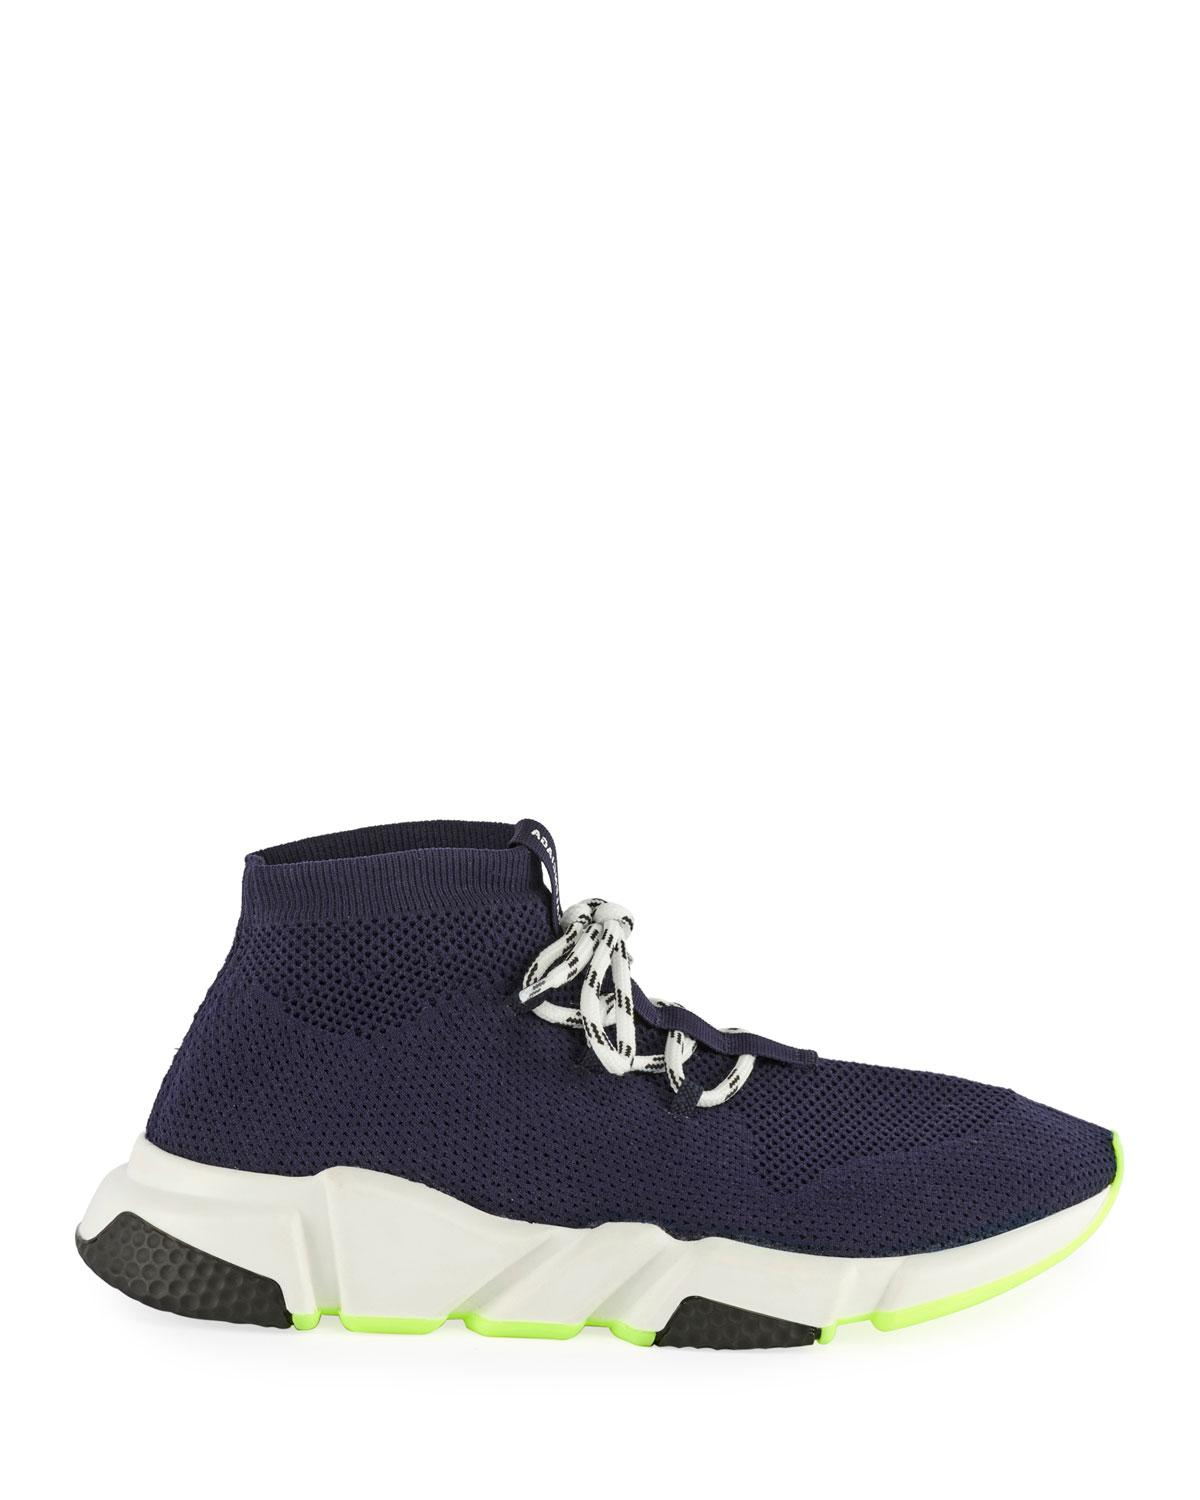 cbed5a998dc6 Lyst - Balenciaga Atlantic Blue Speed Fabric Sneakers in Blue for Men - Save  22%